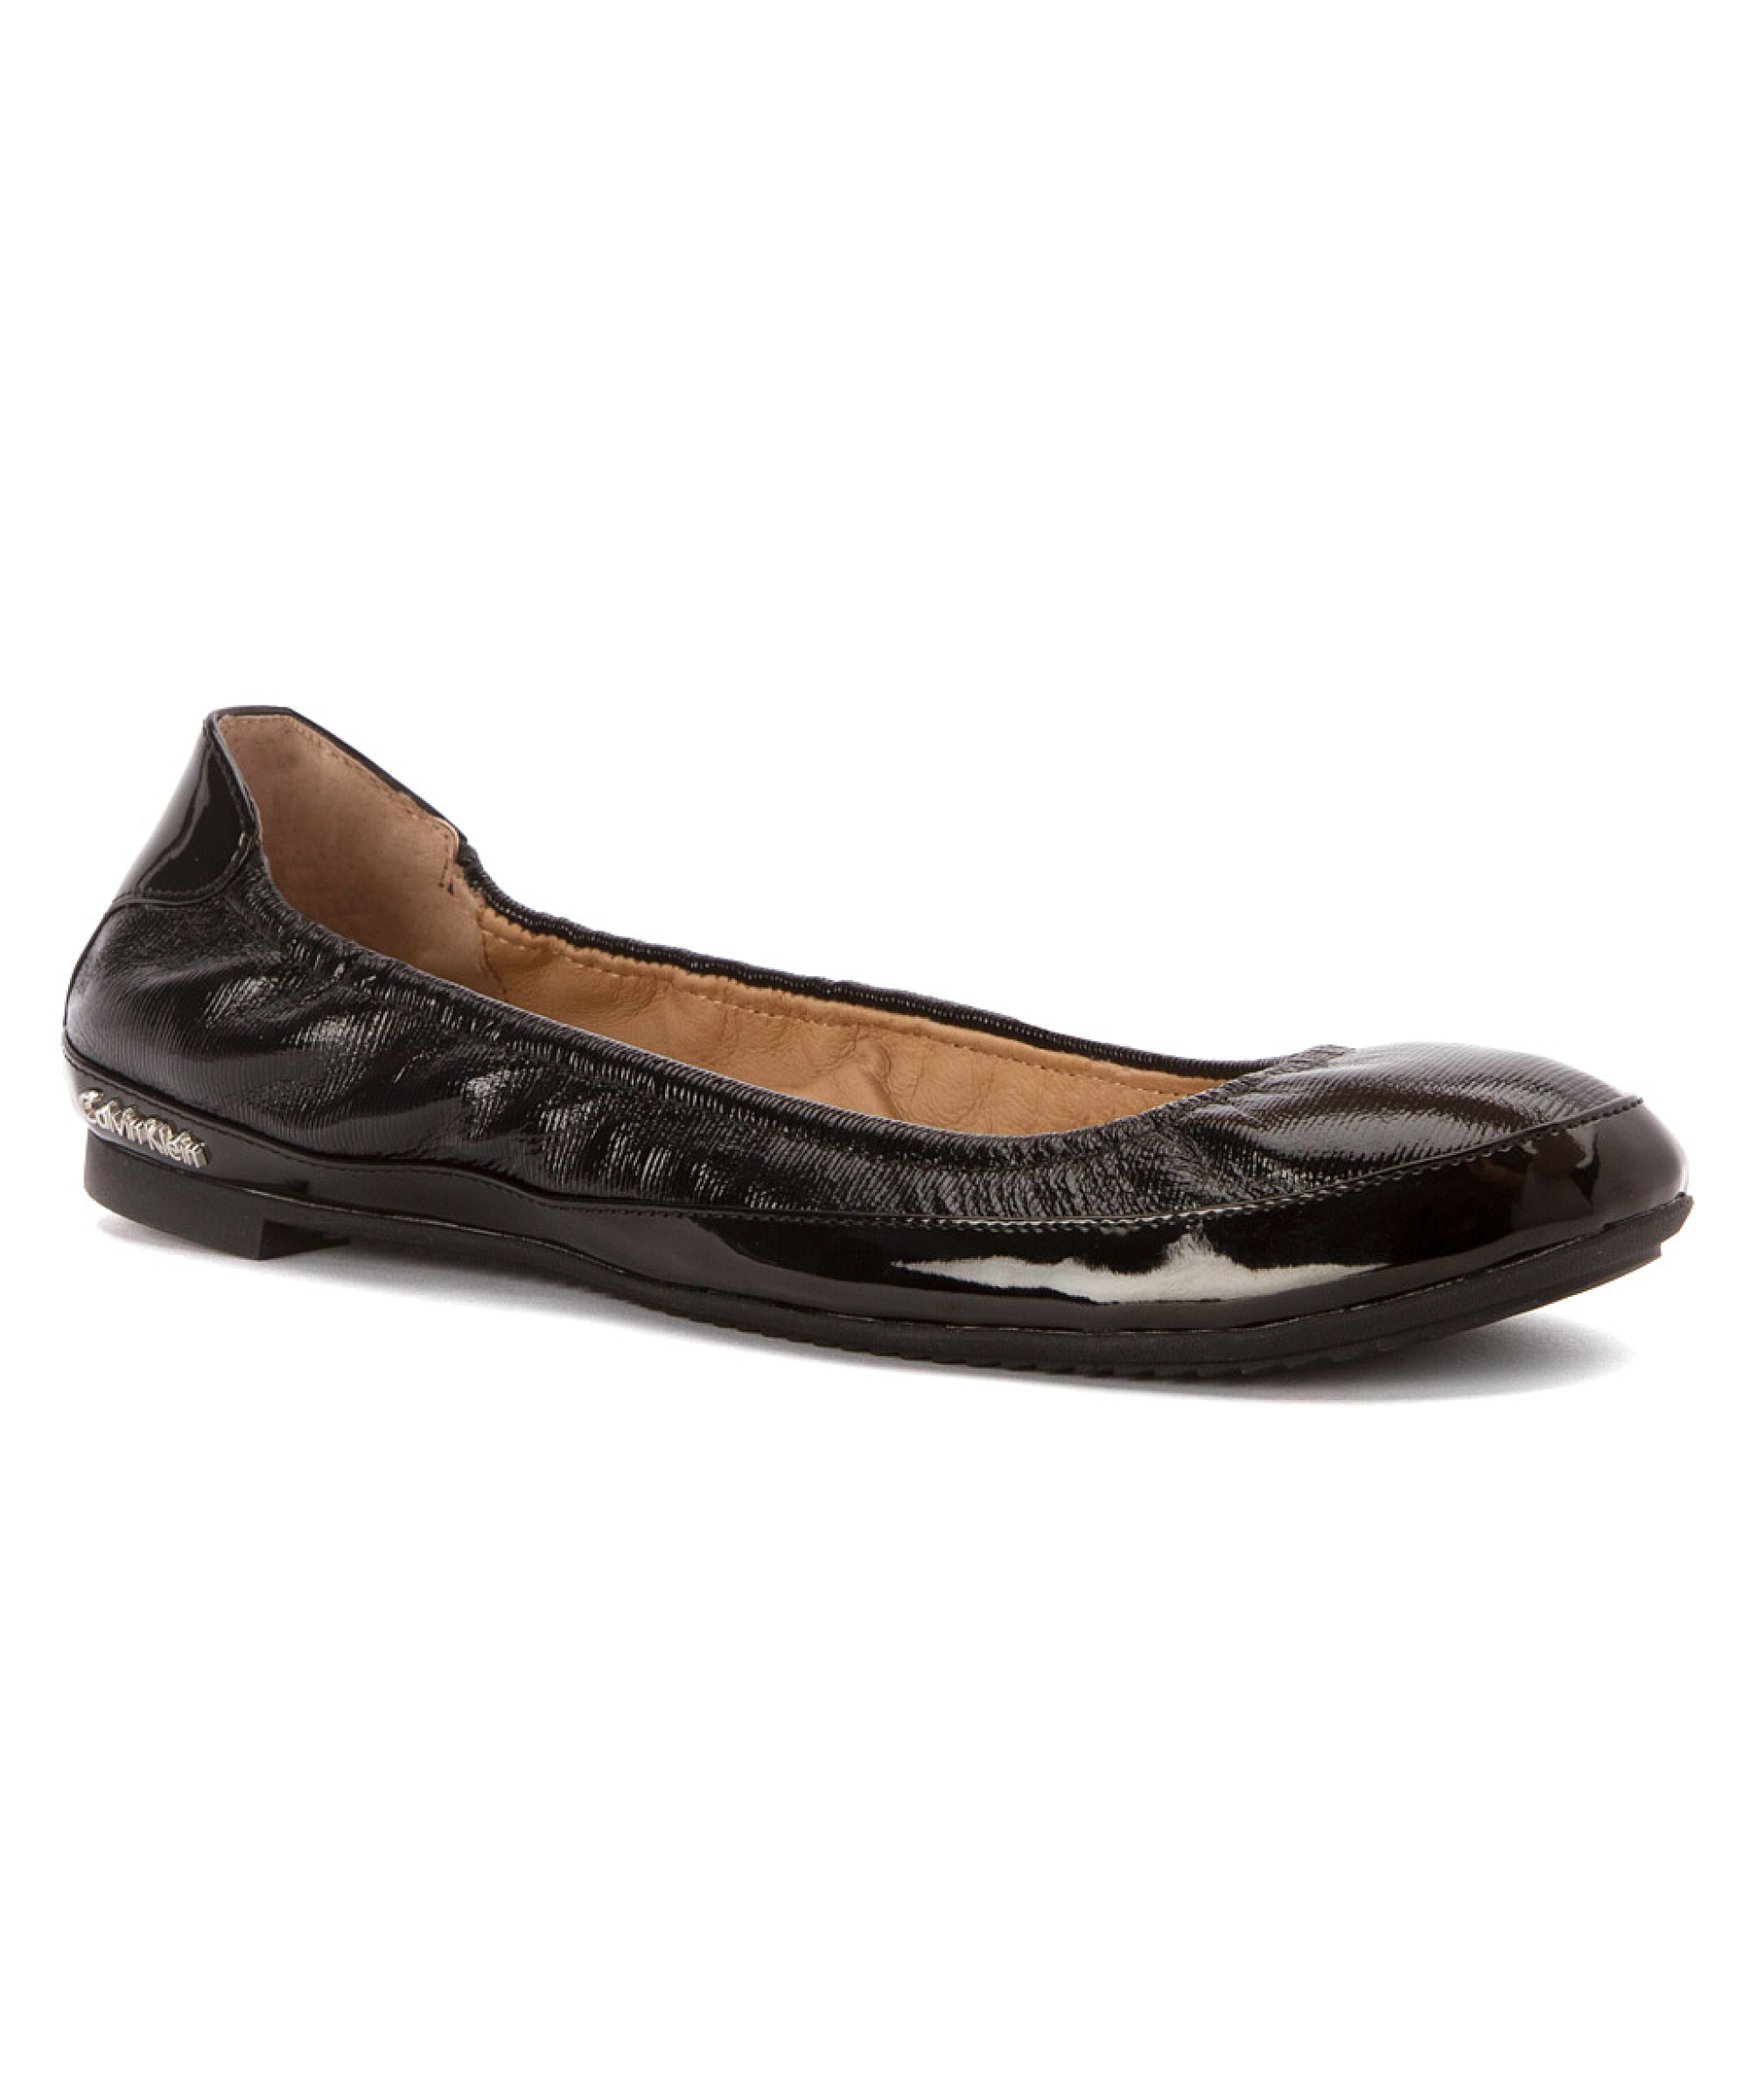 Calvin Klein Womenu0026#39;s Anabelle Flats Shoes In Black | Lyst